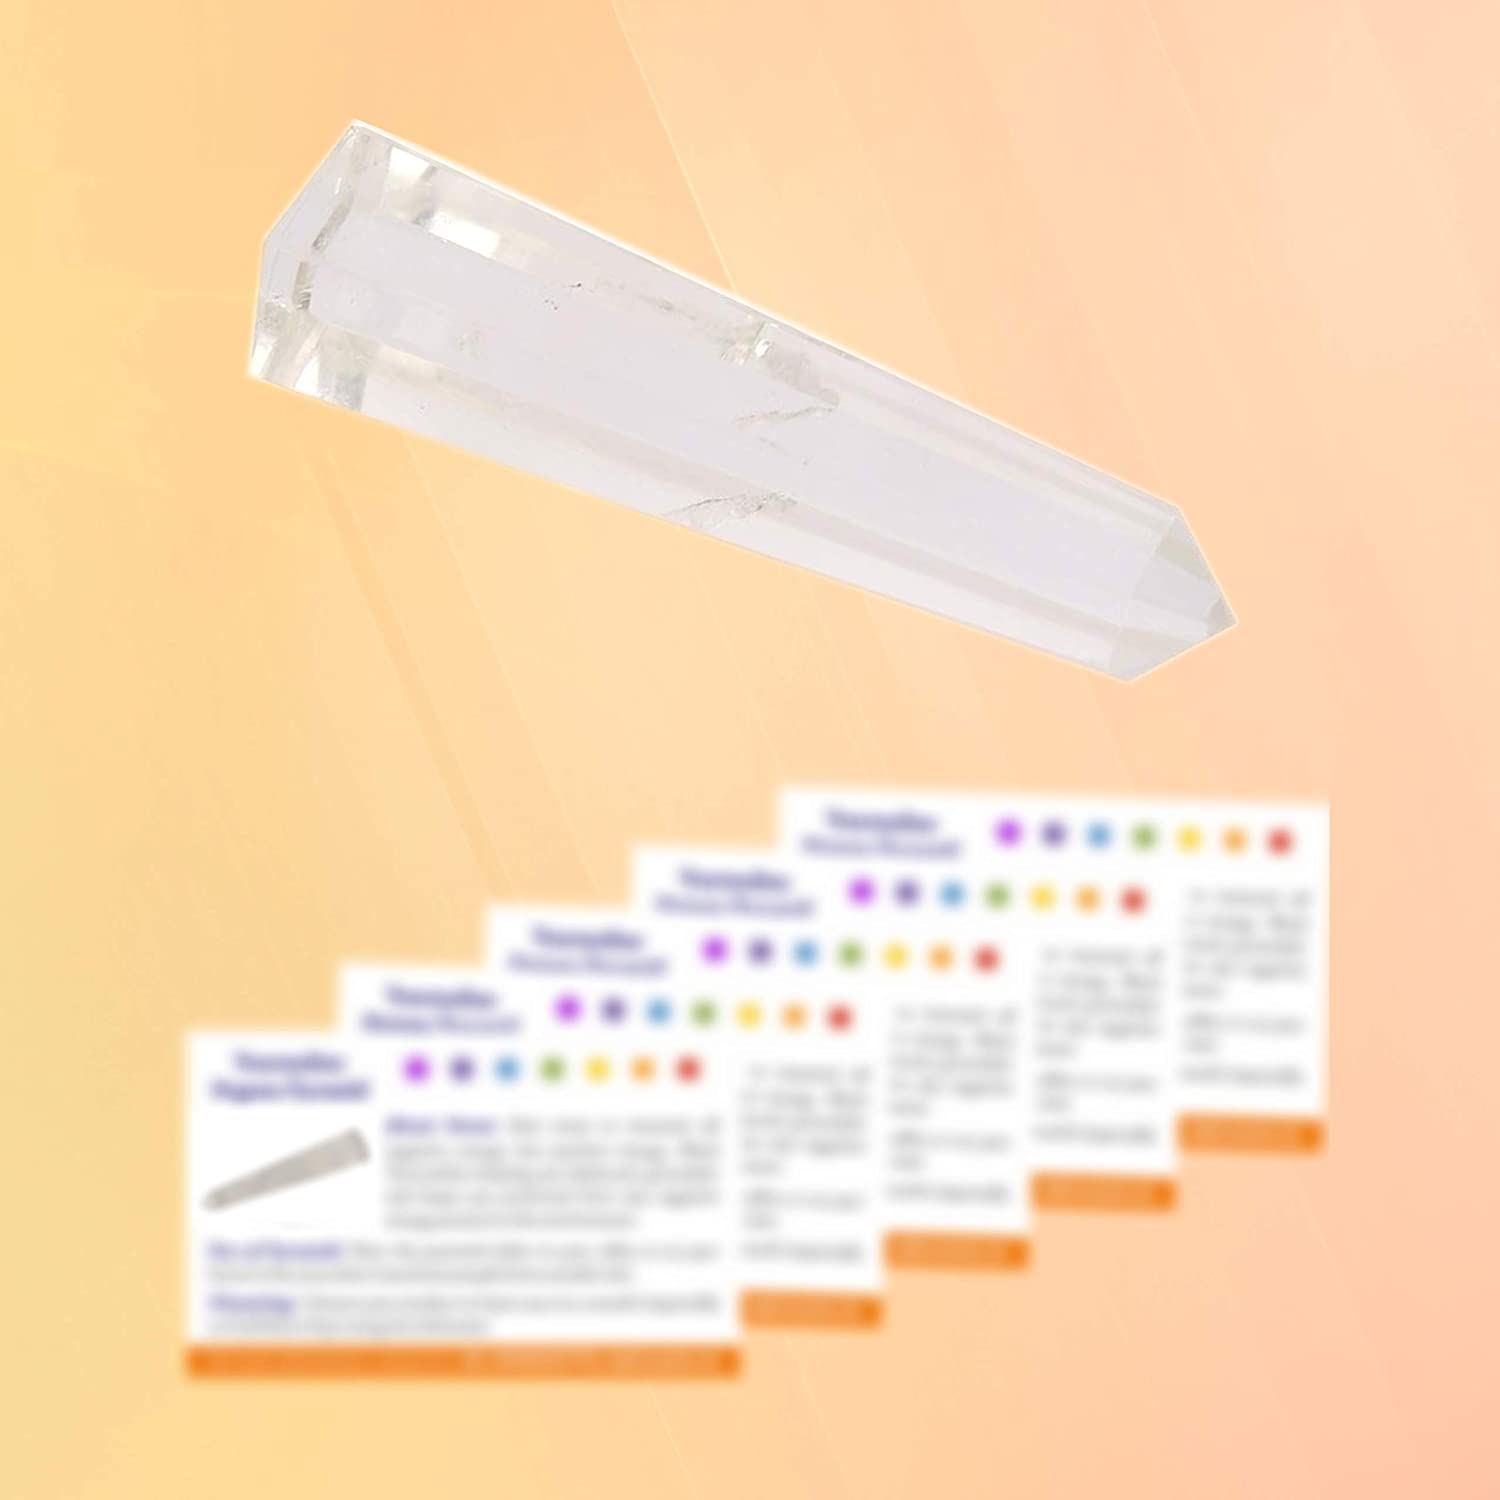 3-5 inch Aatm Crystal Healing Wand Obelisk Tower to Attract Higher Spiritual Energy for Purity Gift